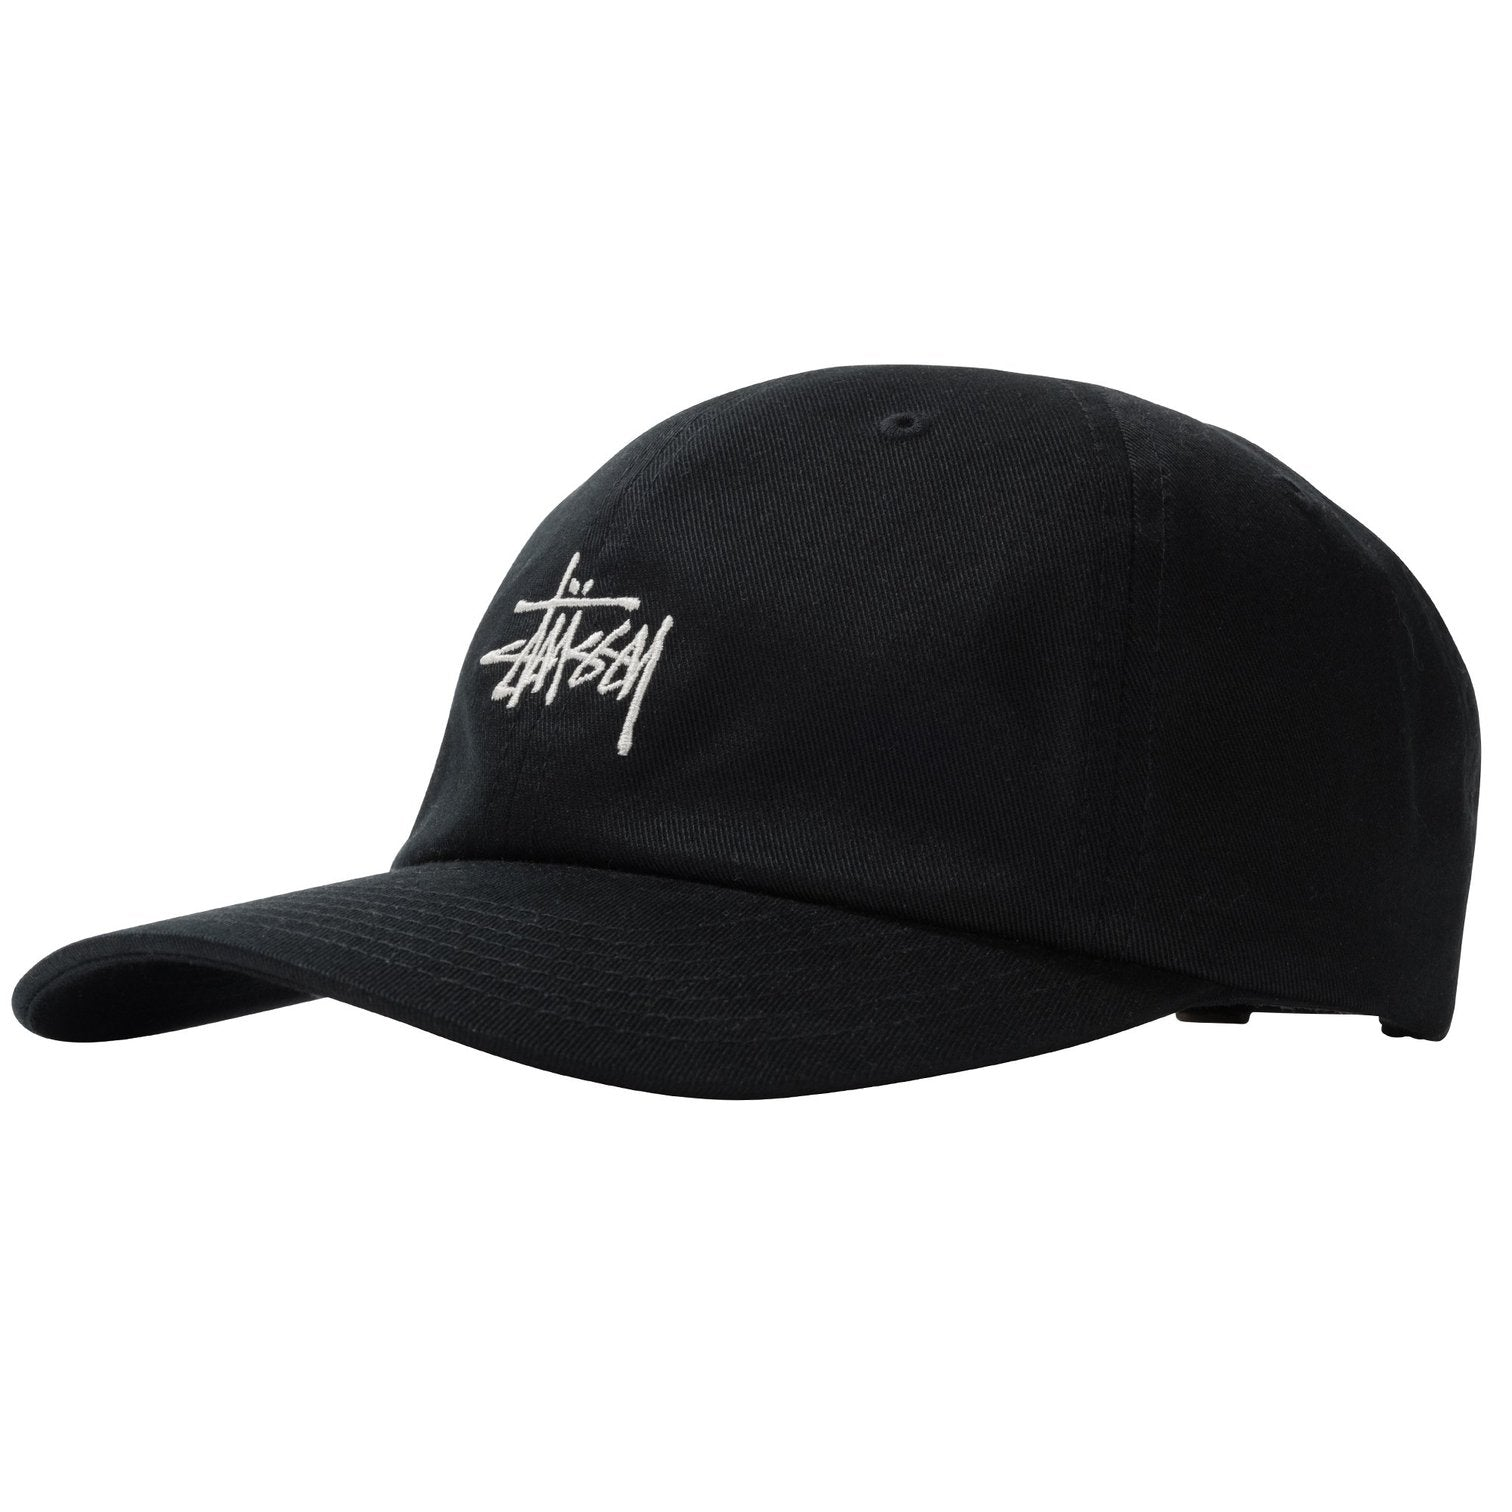 Stock Low Pro Cap Black